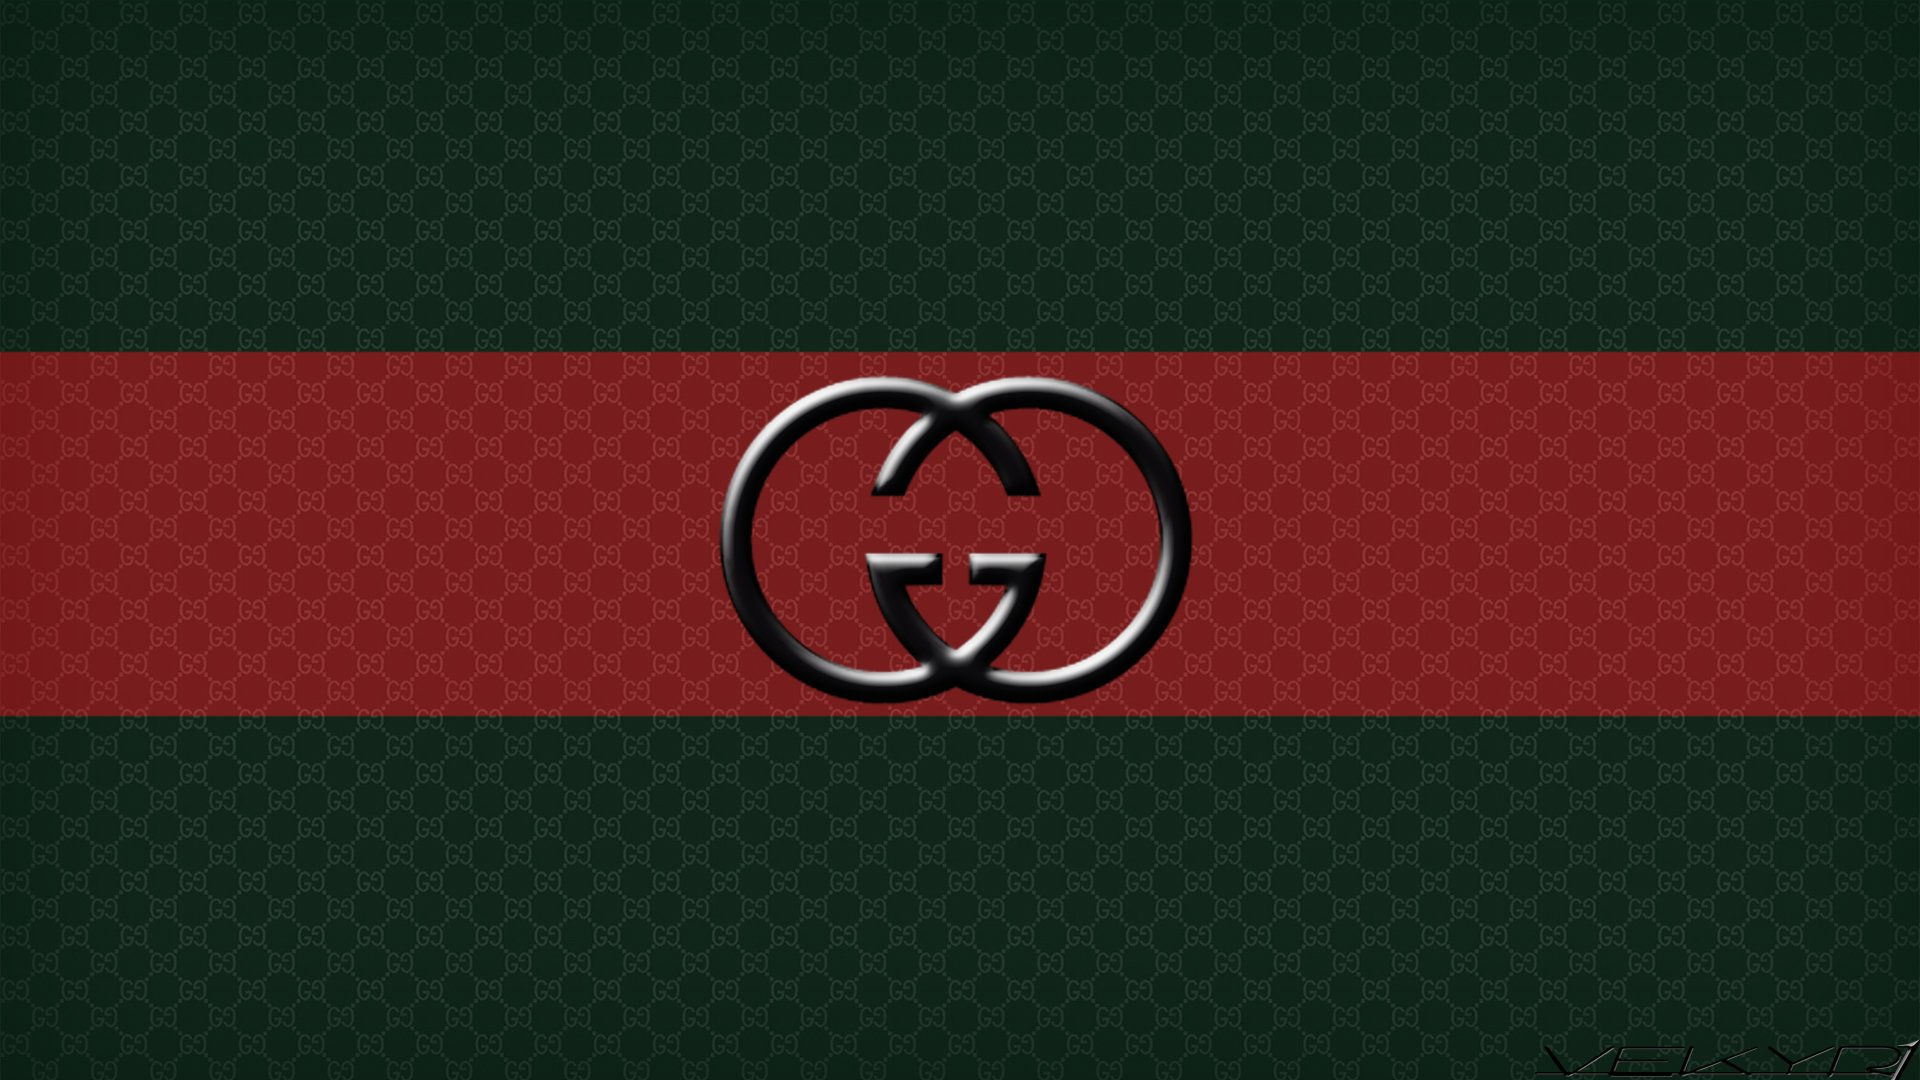 Gucci wallpaper by vekyR1 1920x1080